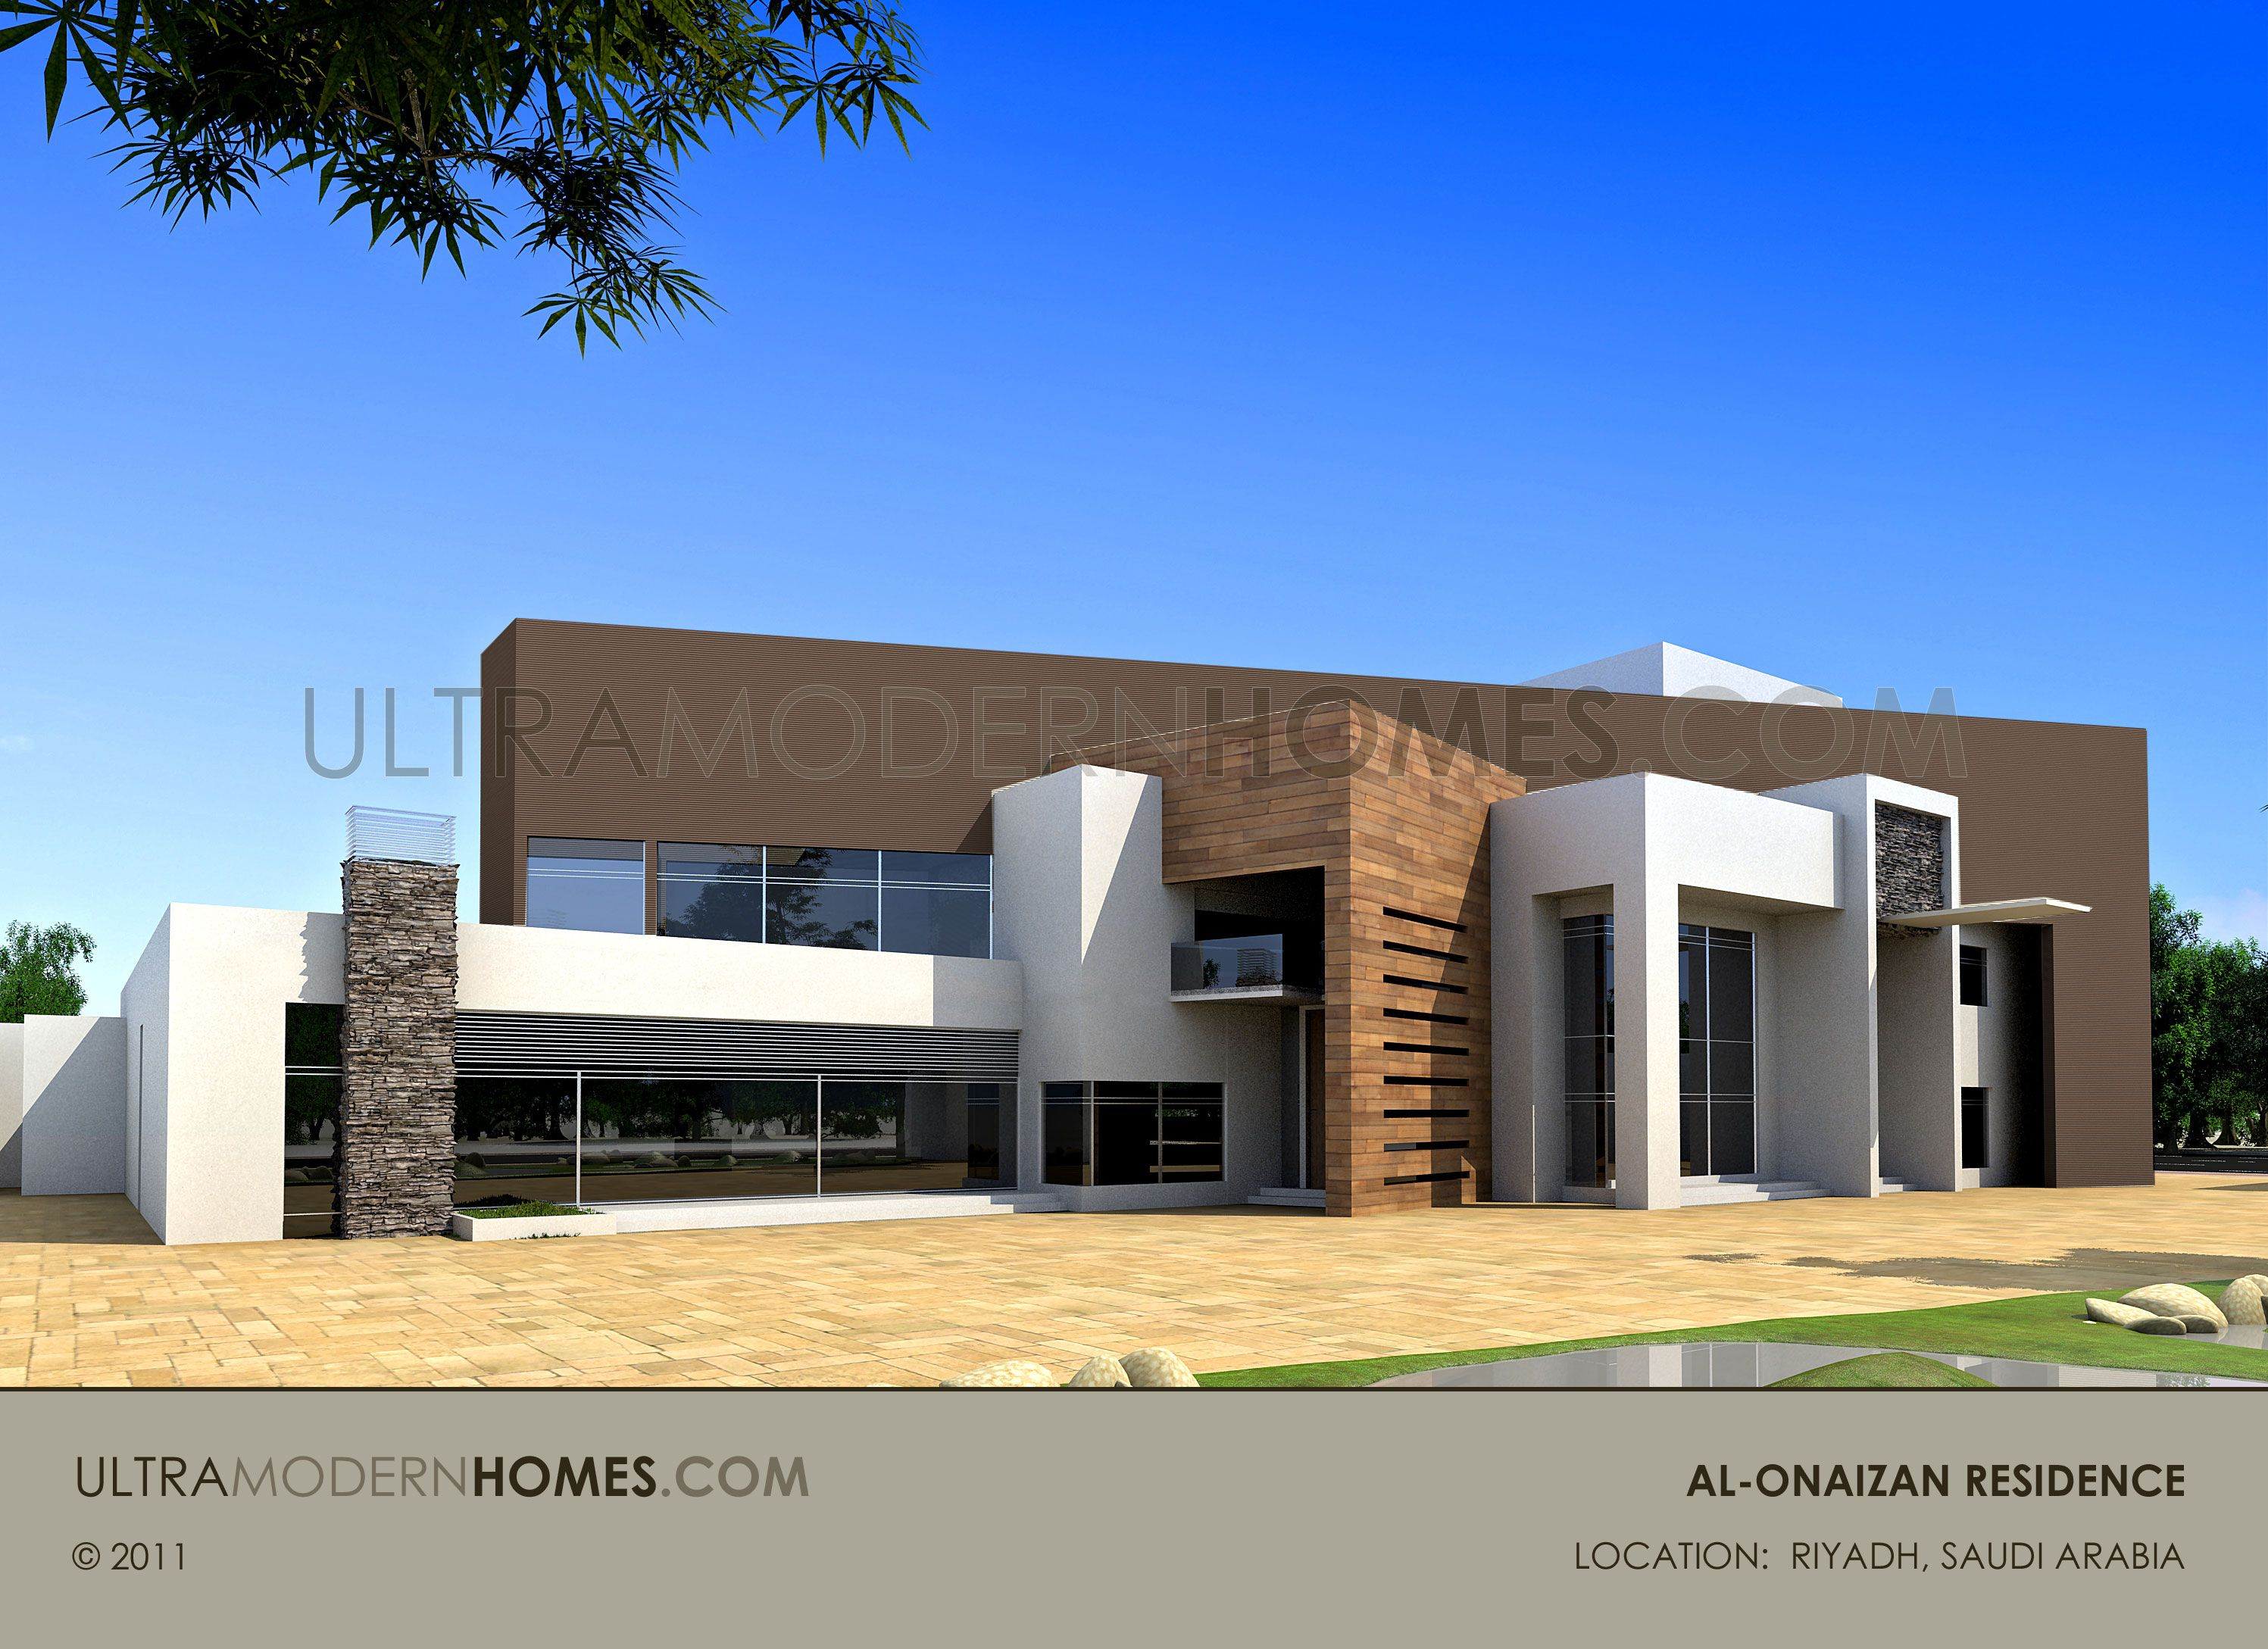 Luxury ultra modern custom home design in riyadh saudi for Custom house design